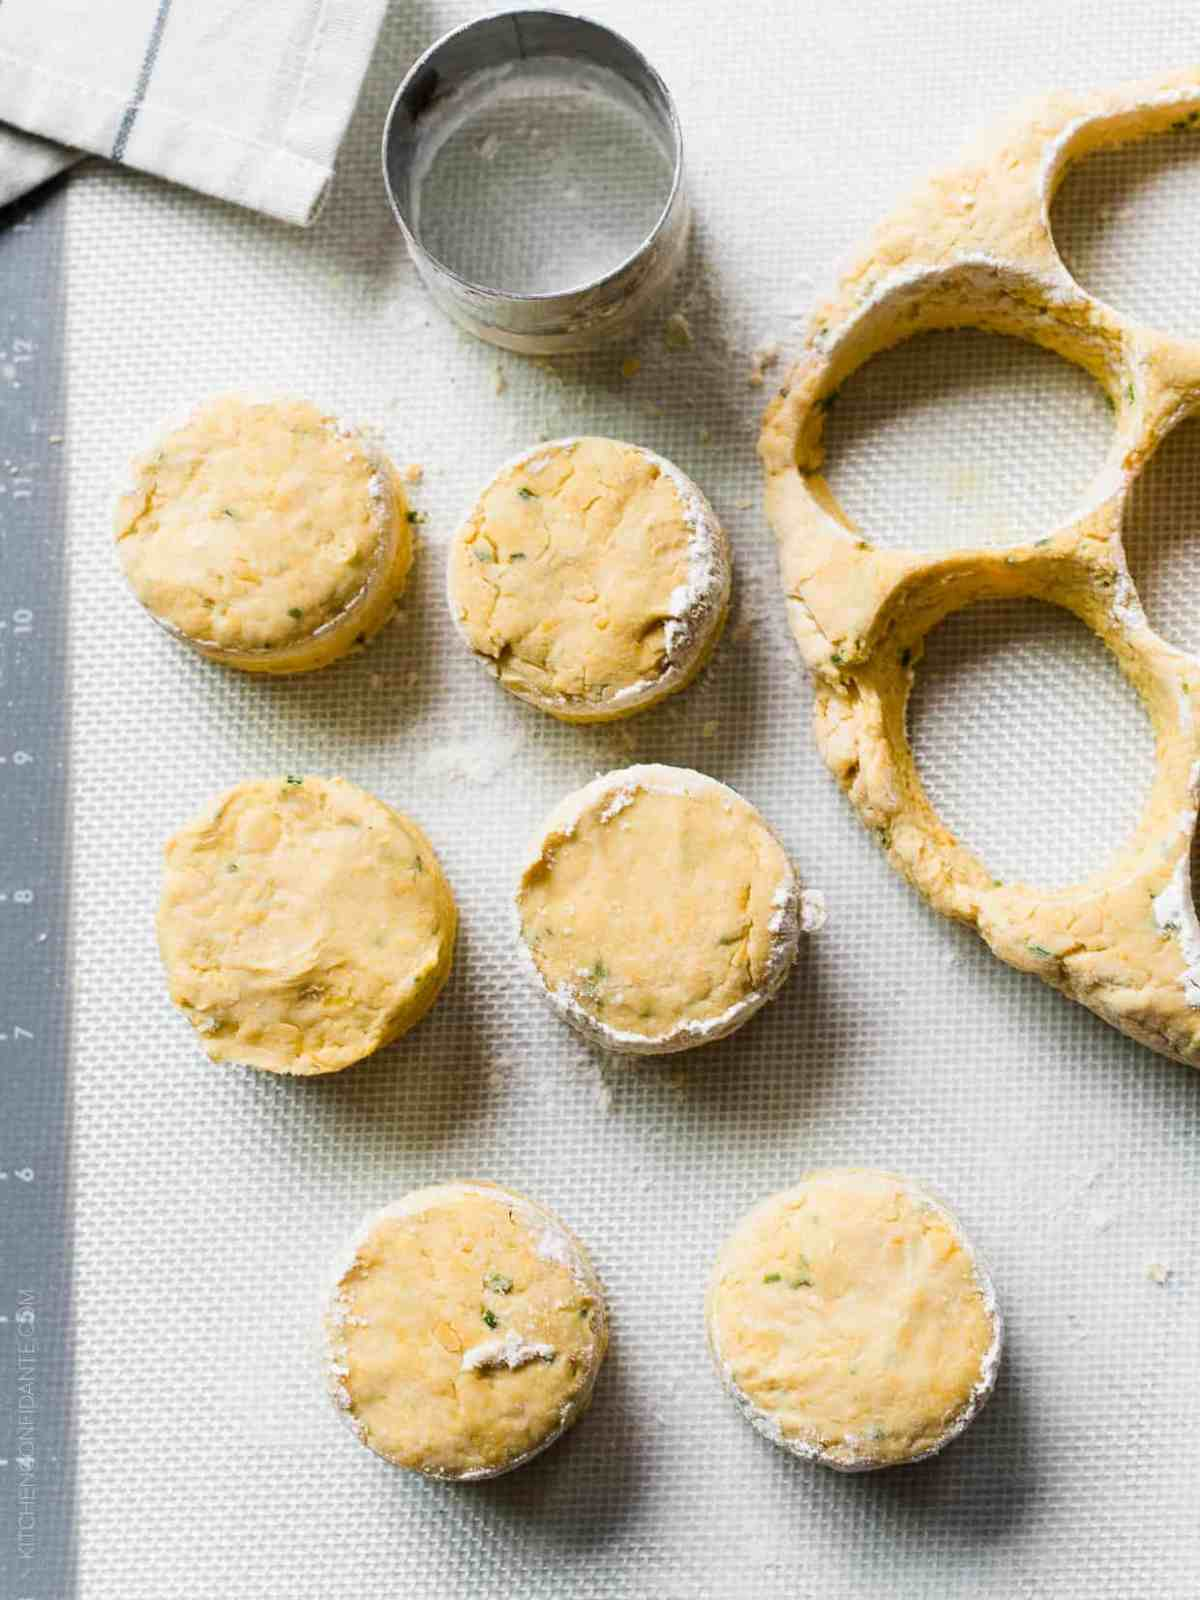 Pumpkin Cheddar Biscuits cut with a round cutter and ready to be baked.